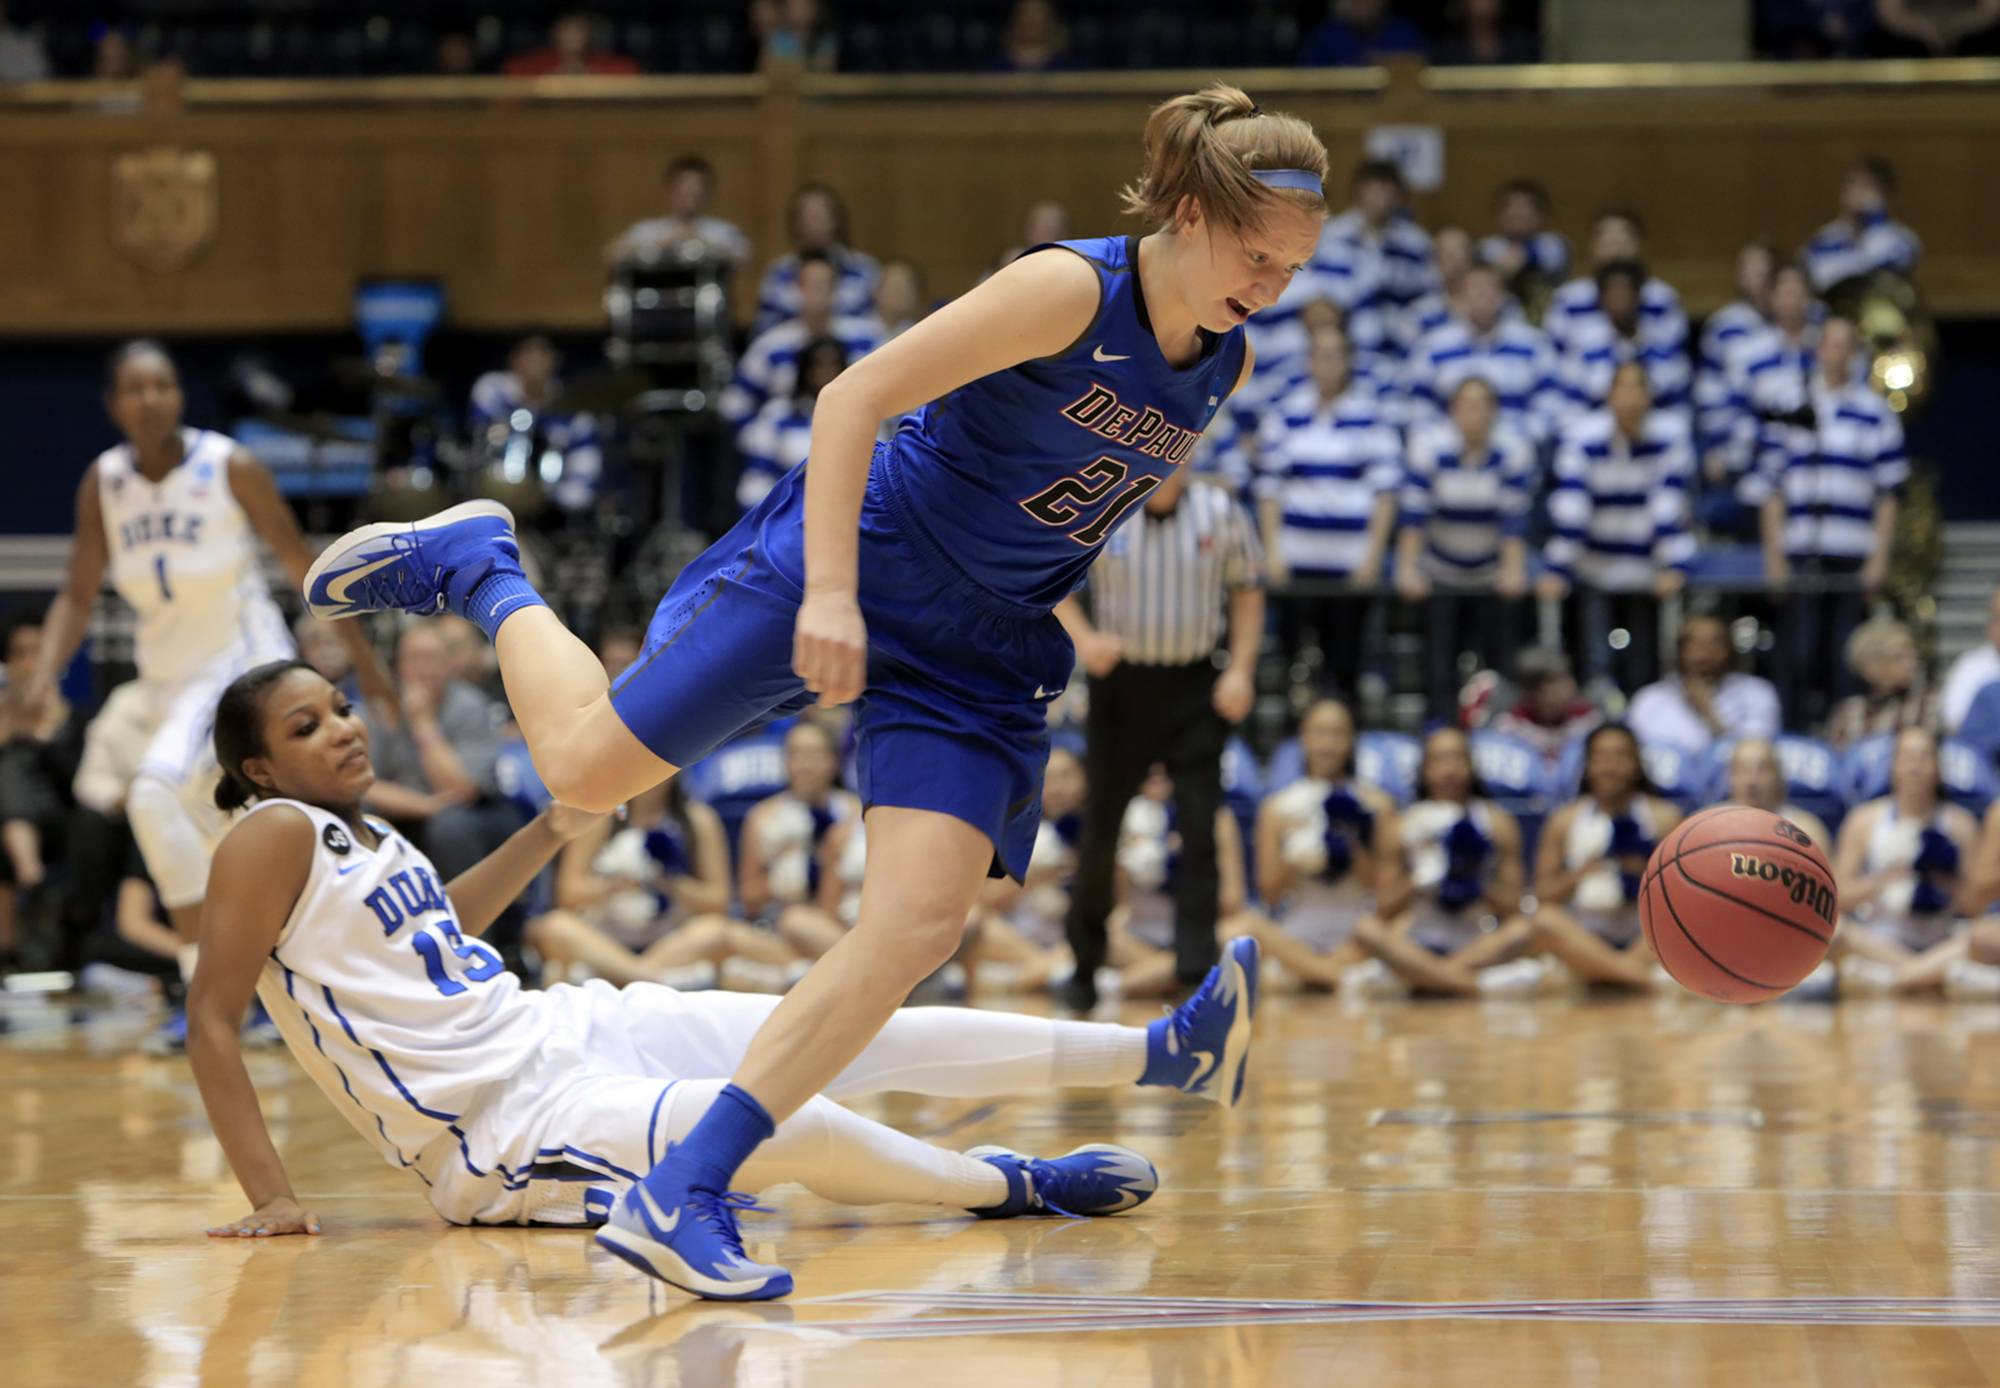 DePaul's Megan Rogowski, game-high scorer with 22 points, beats Duke's Richa Jackson, on floor, to a loose ball during the second half of Duke's 74-65 loss in their second-round game in the NCAA basketball tournament in Durham, N.C., Monday, March 24, 2014.